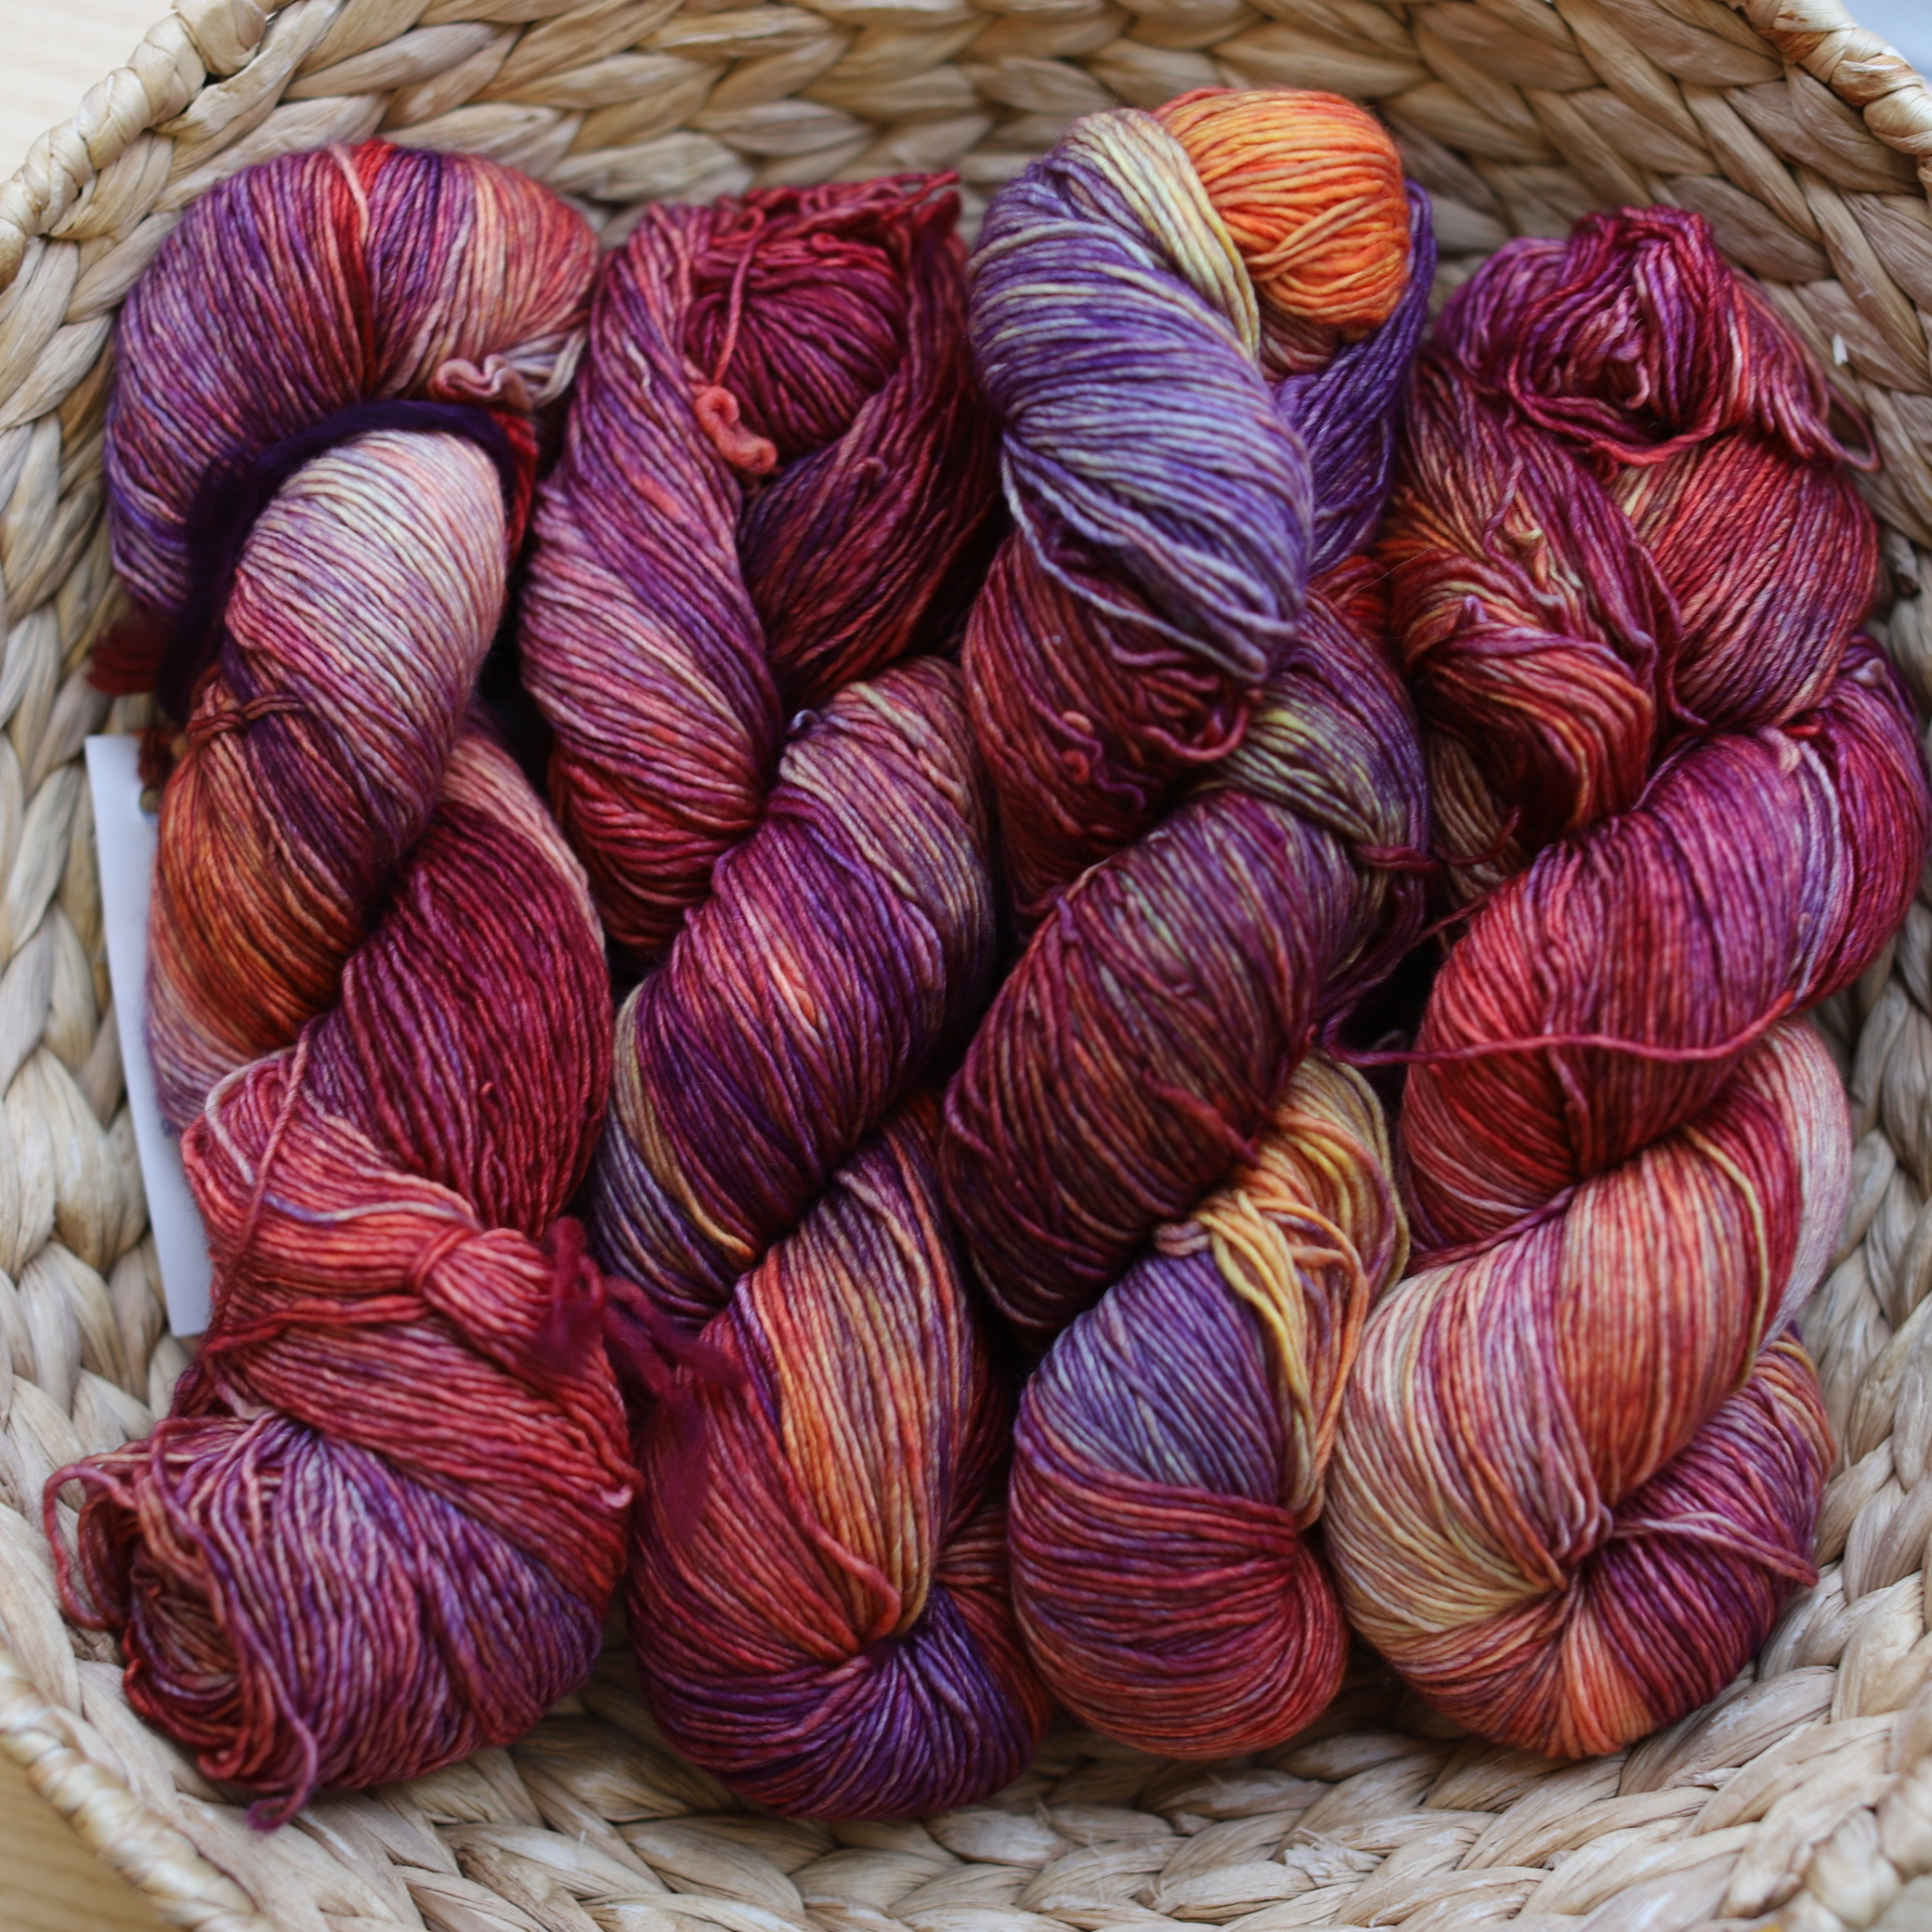 Malabrigo Mechita 850 Archangel